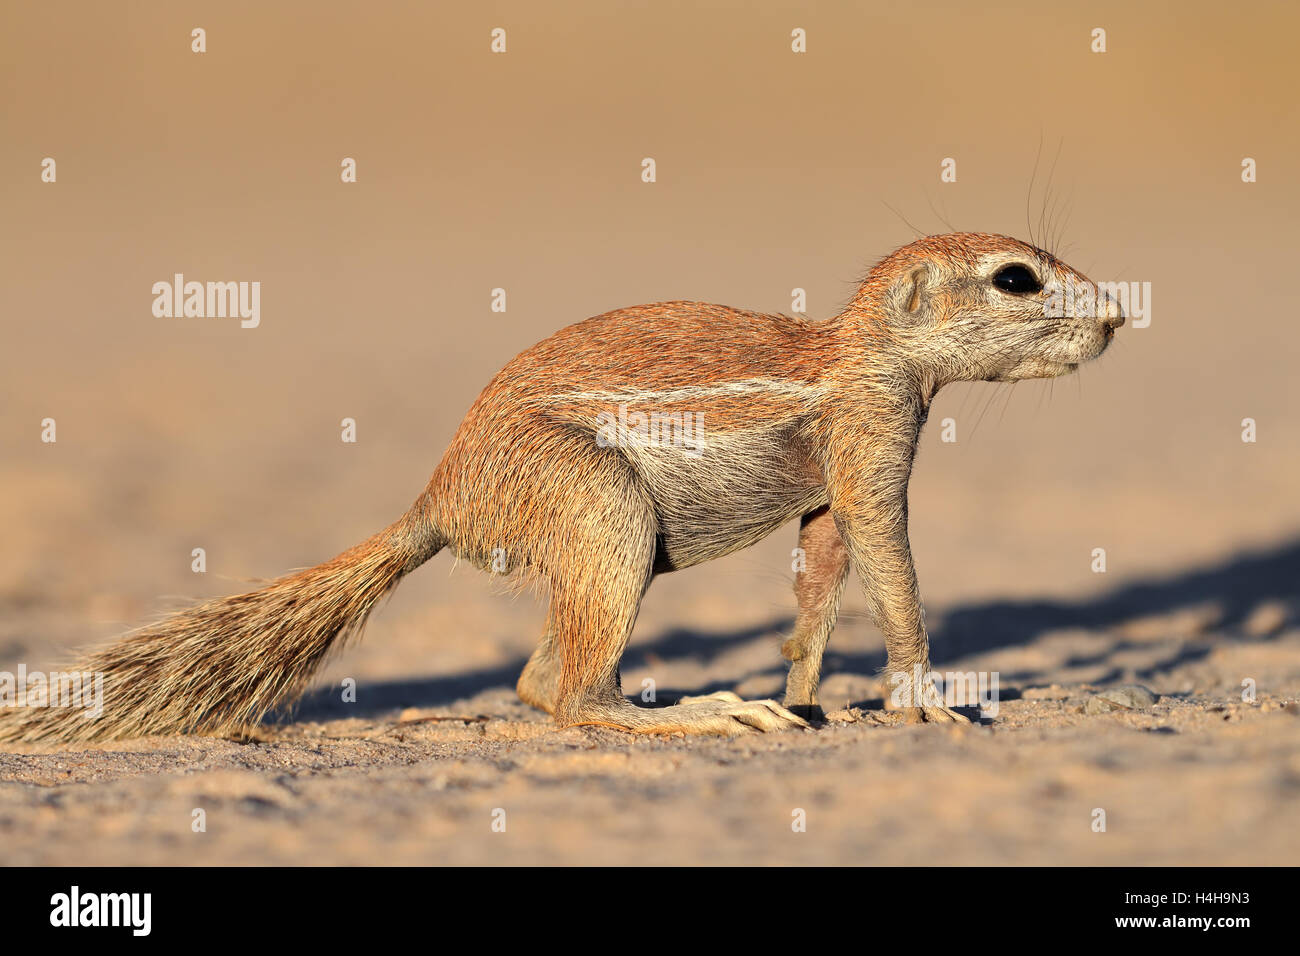 An alert ground squirrel (Xerus inaurus), Kalahari desert, South Africa - Stock Image